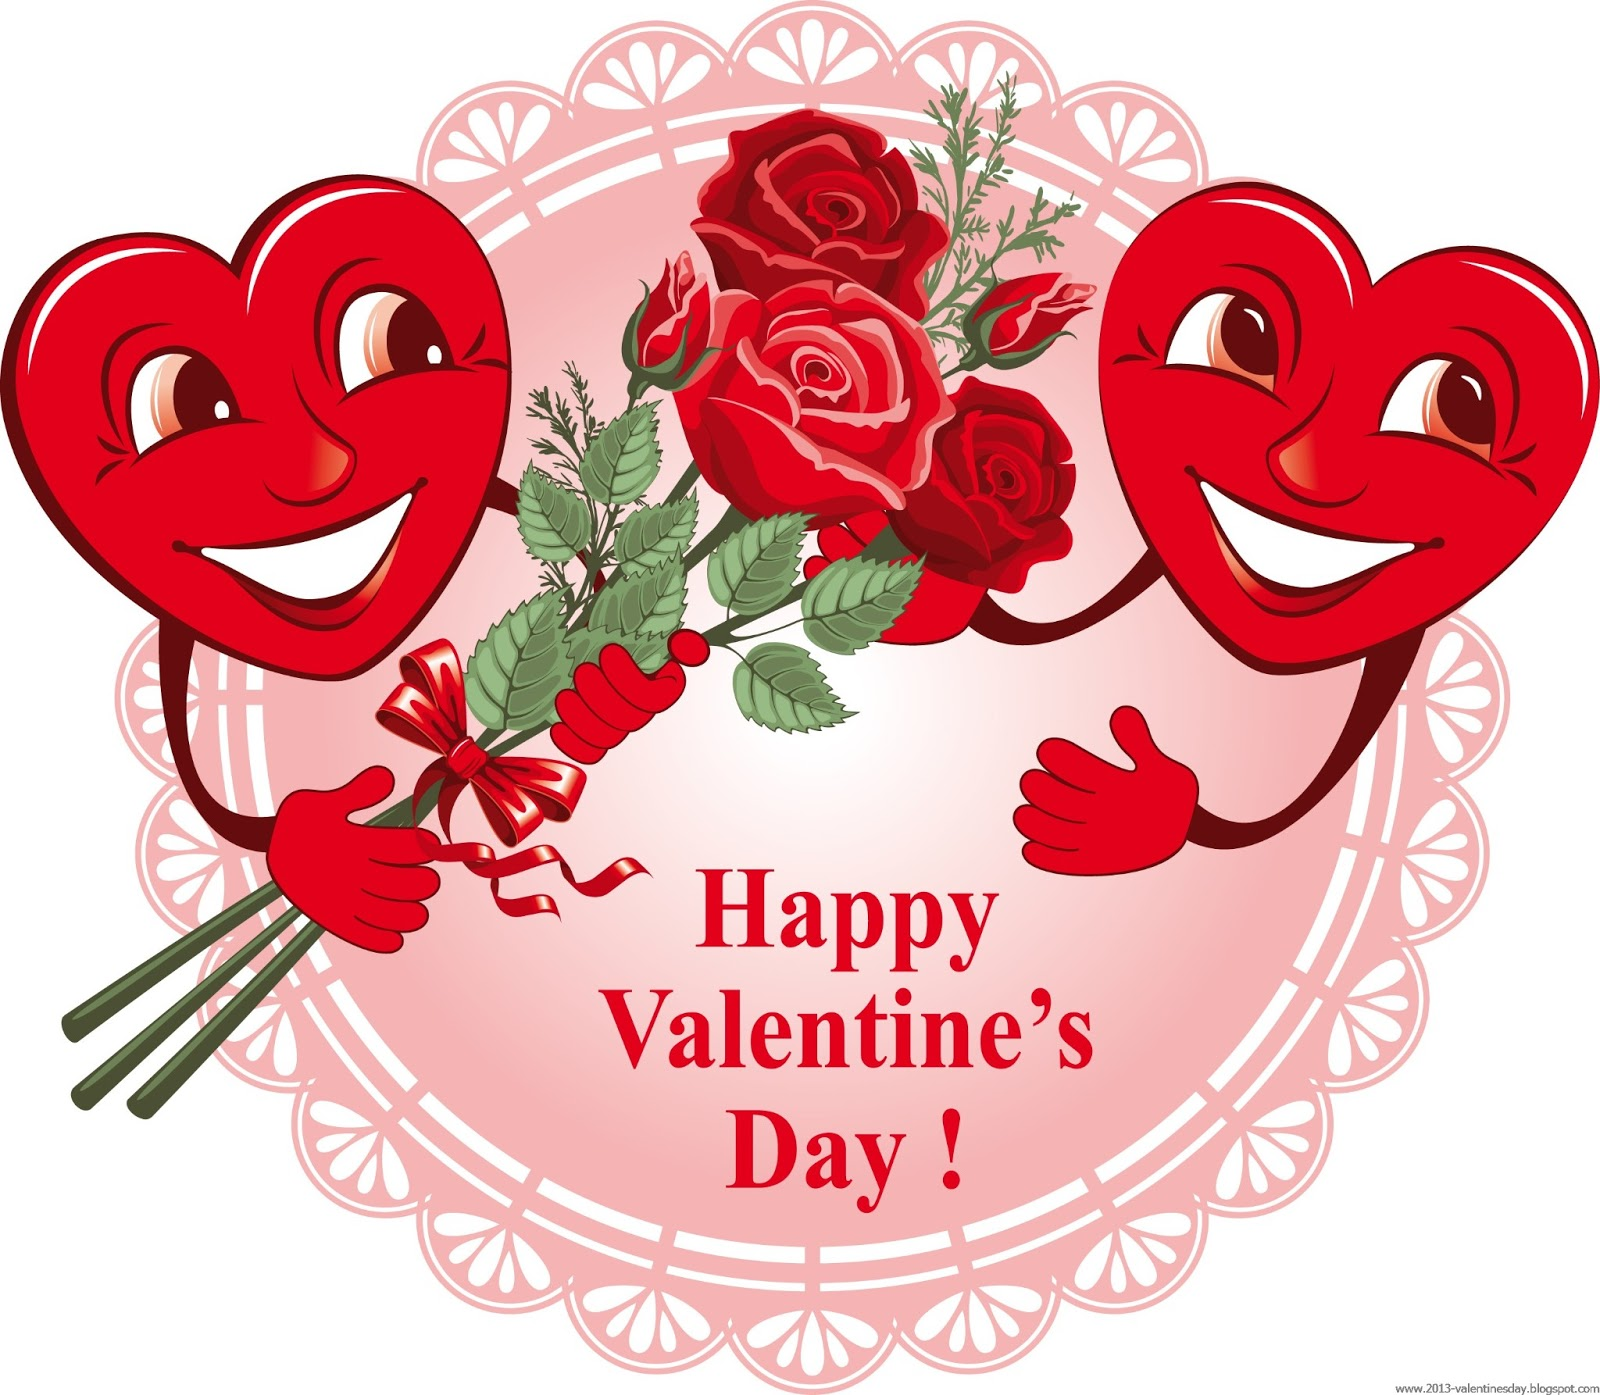 Valentines Day Images 2018 Wishes Greetings Messages For